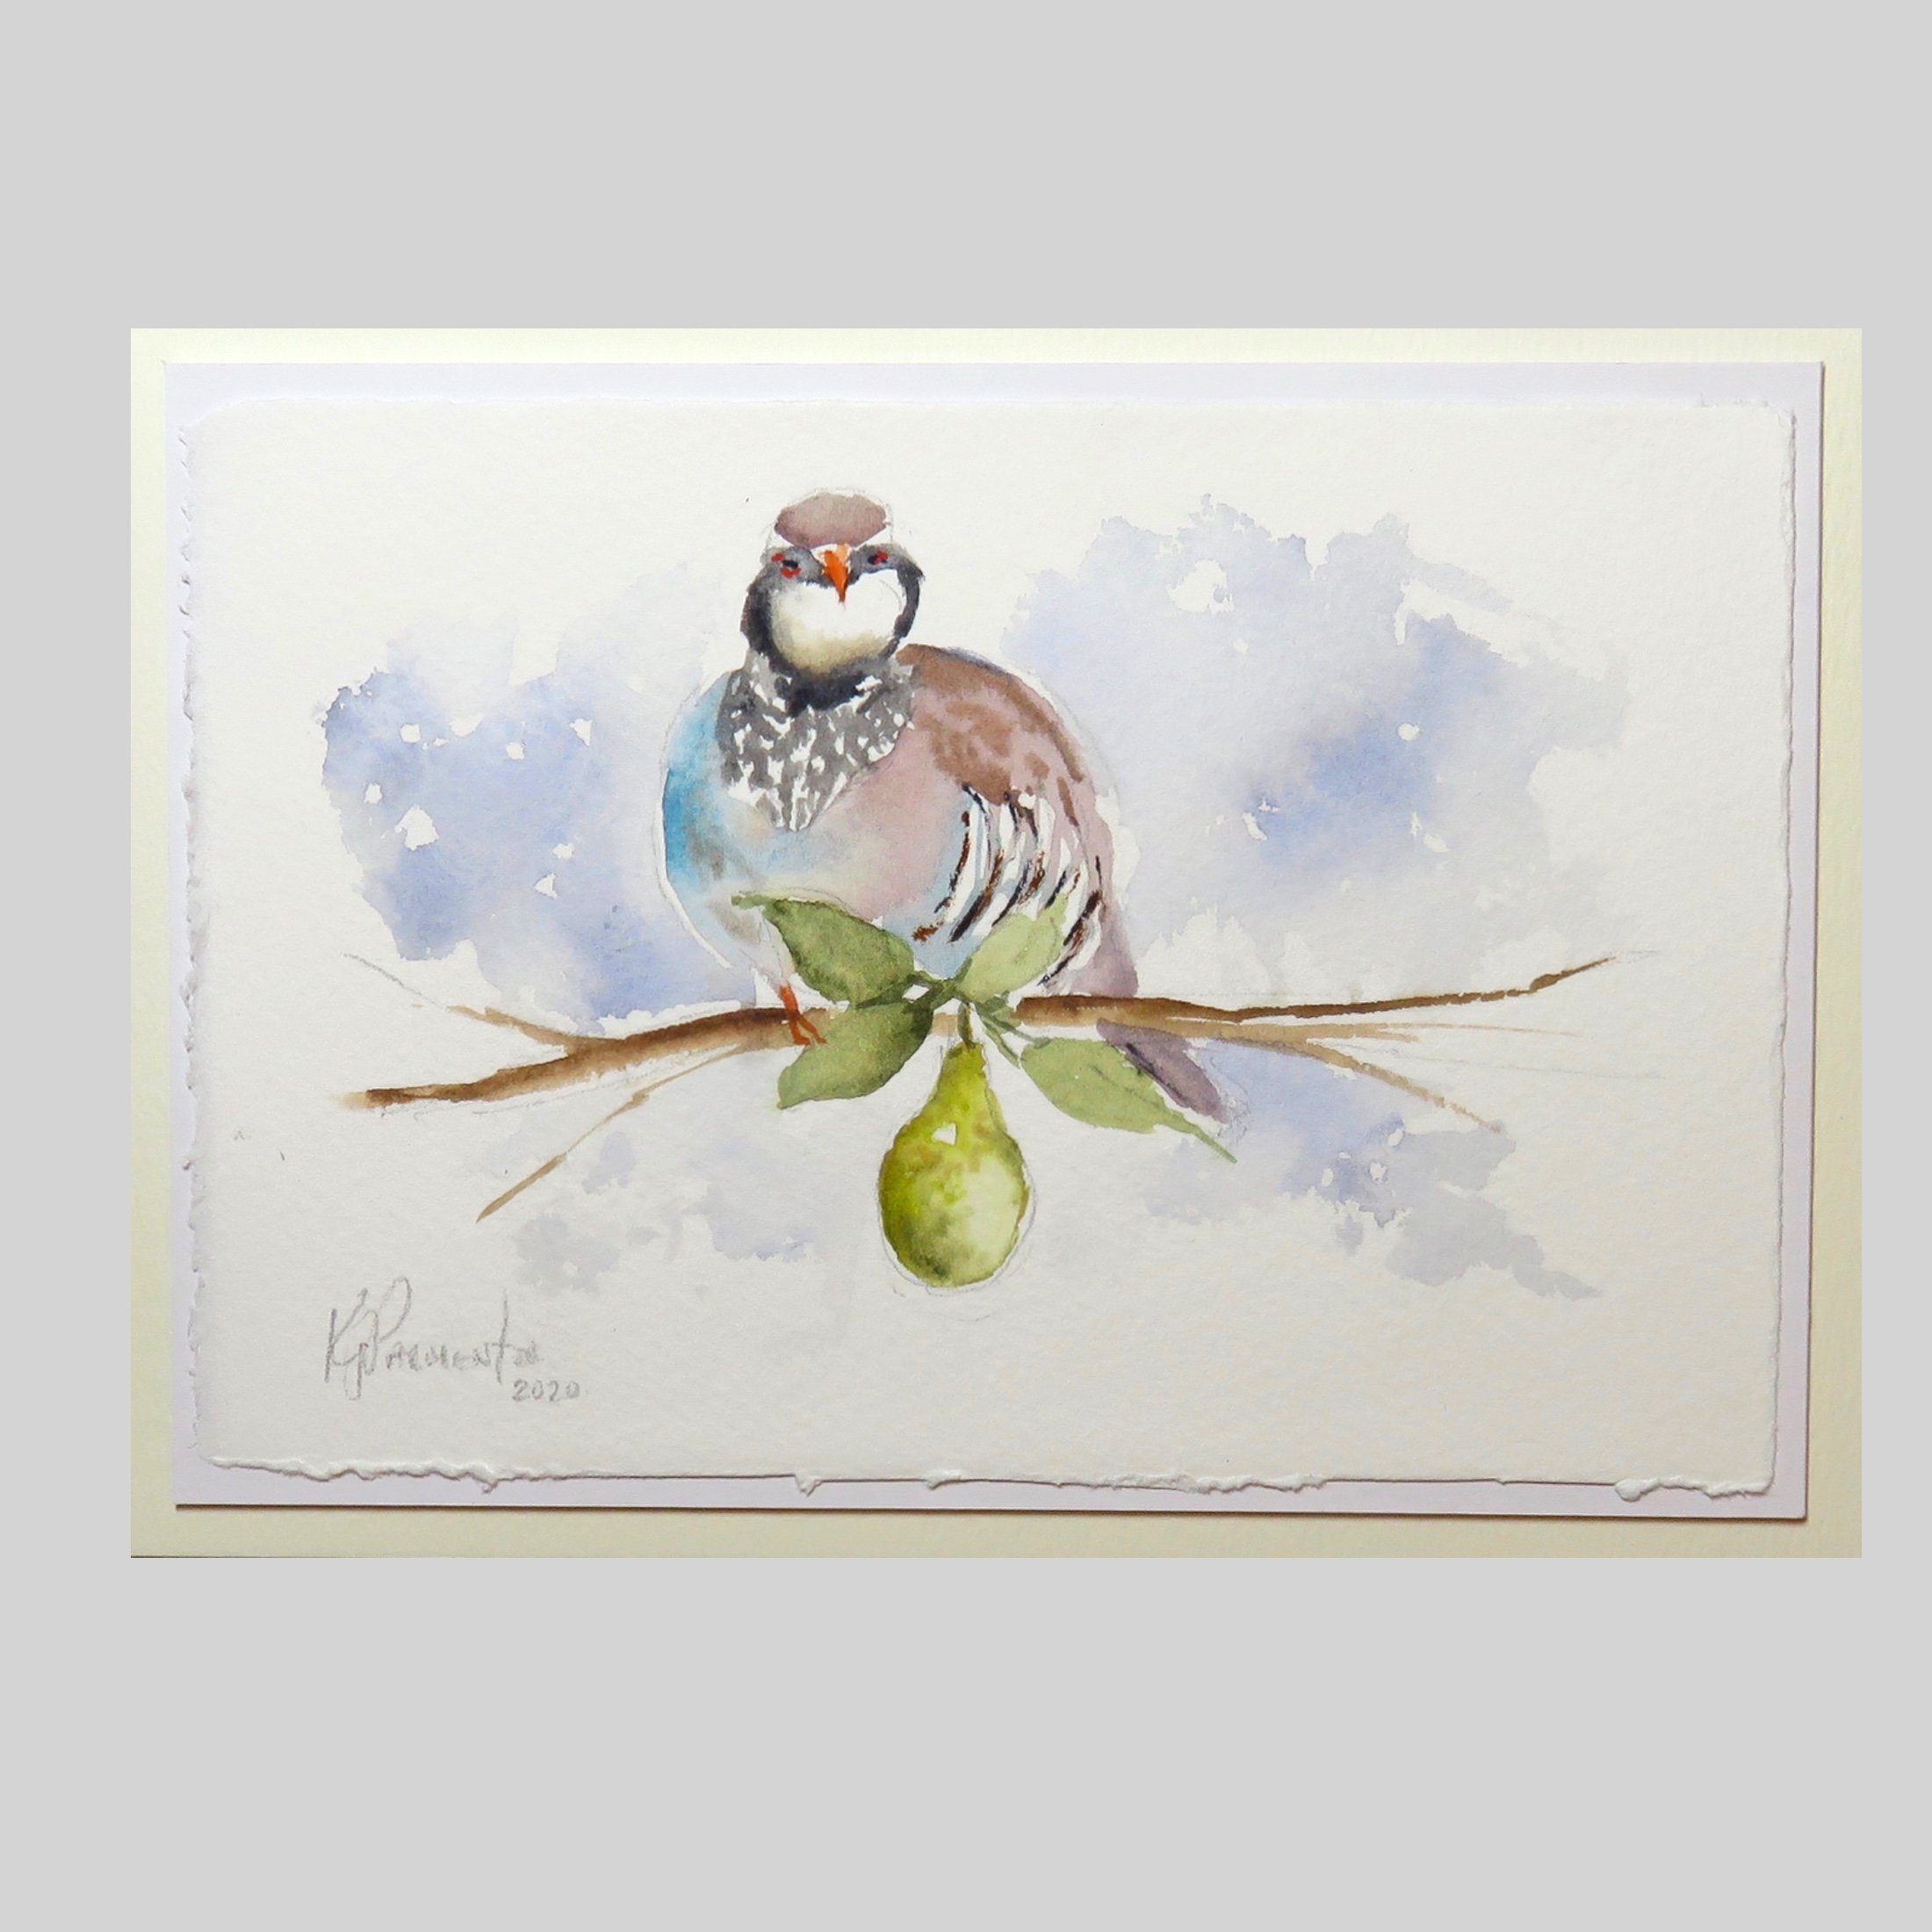 Painted Card – Partridge in a pear tree